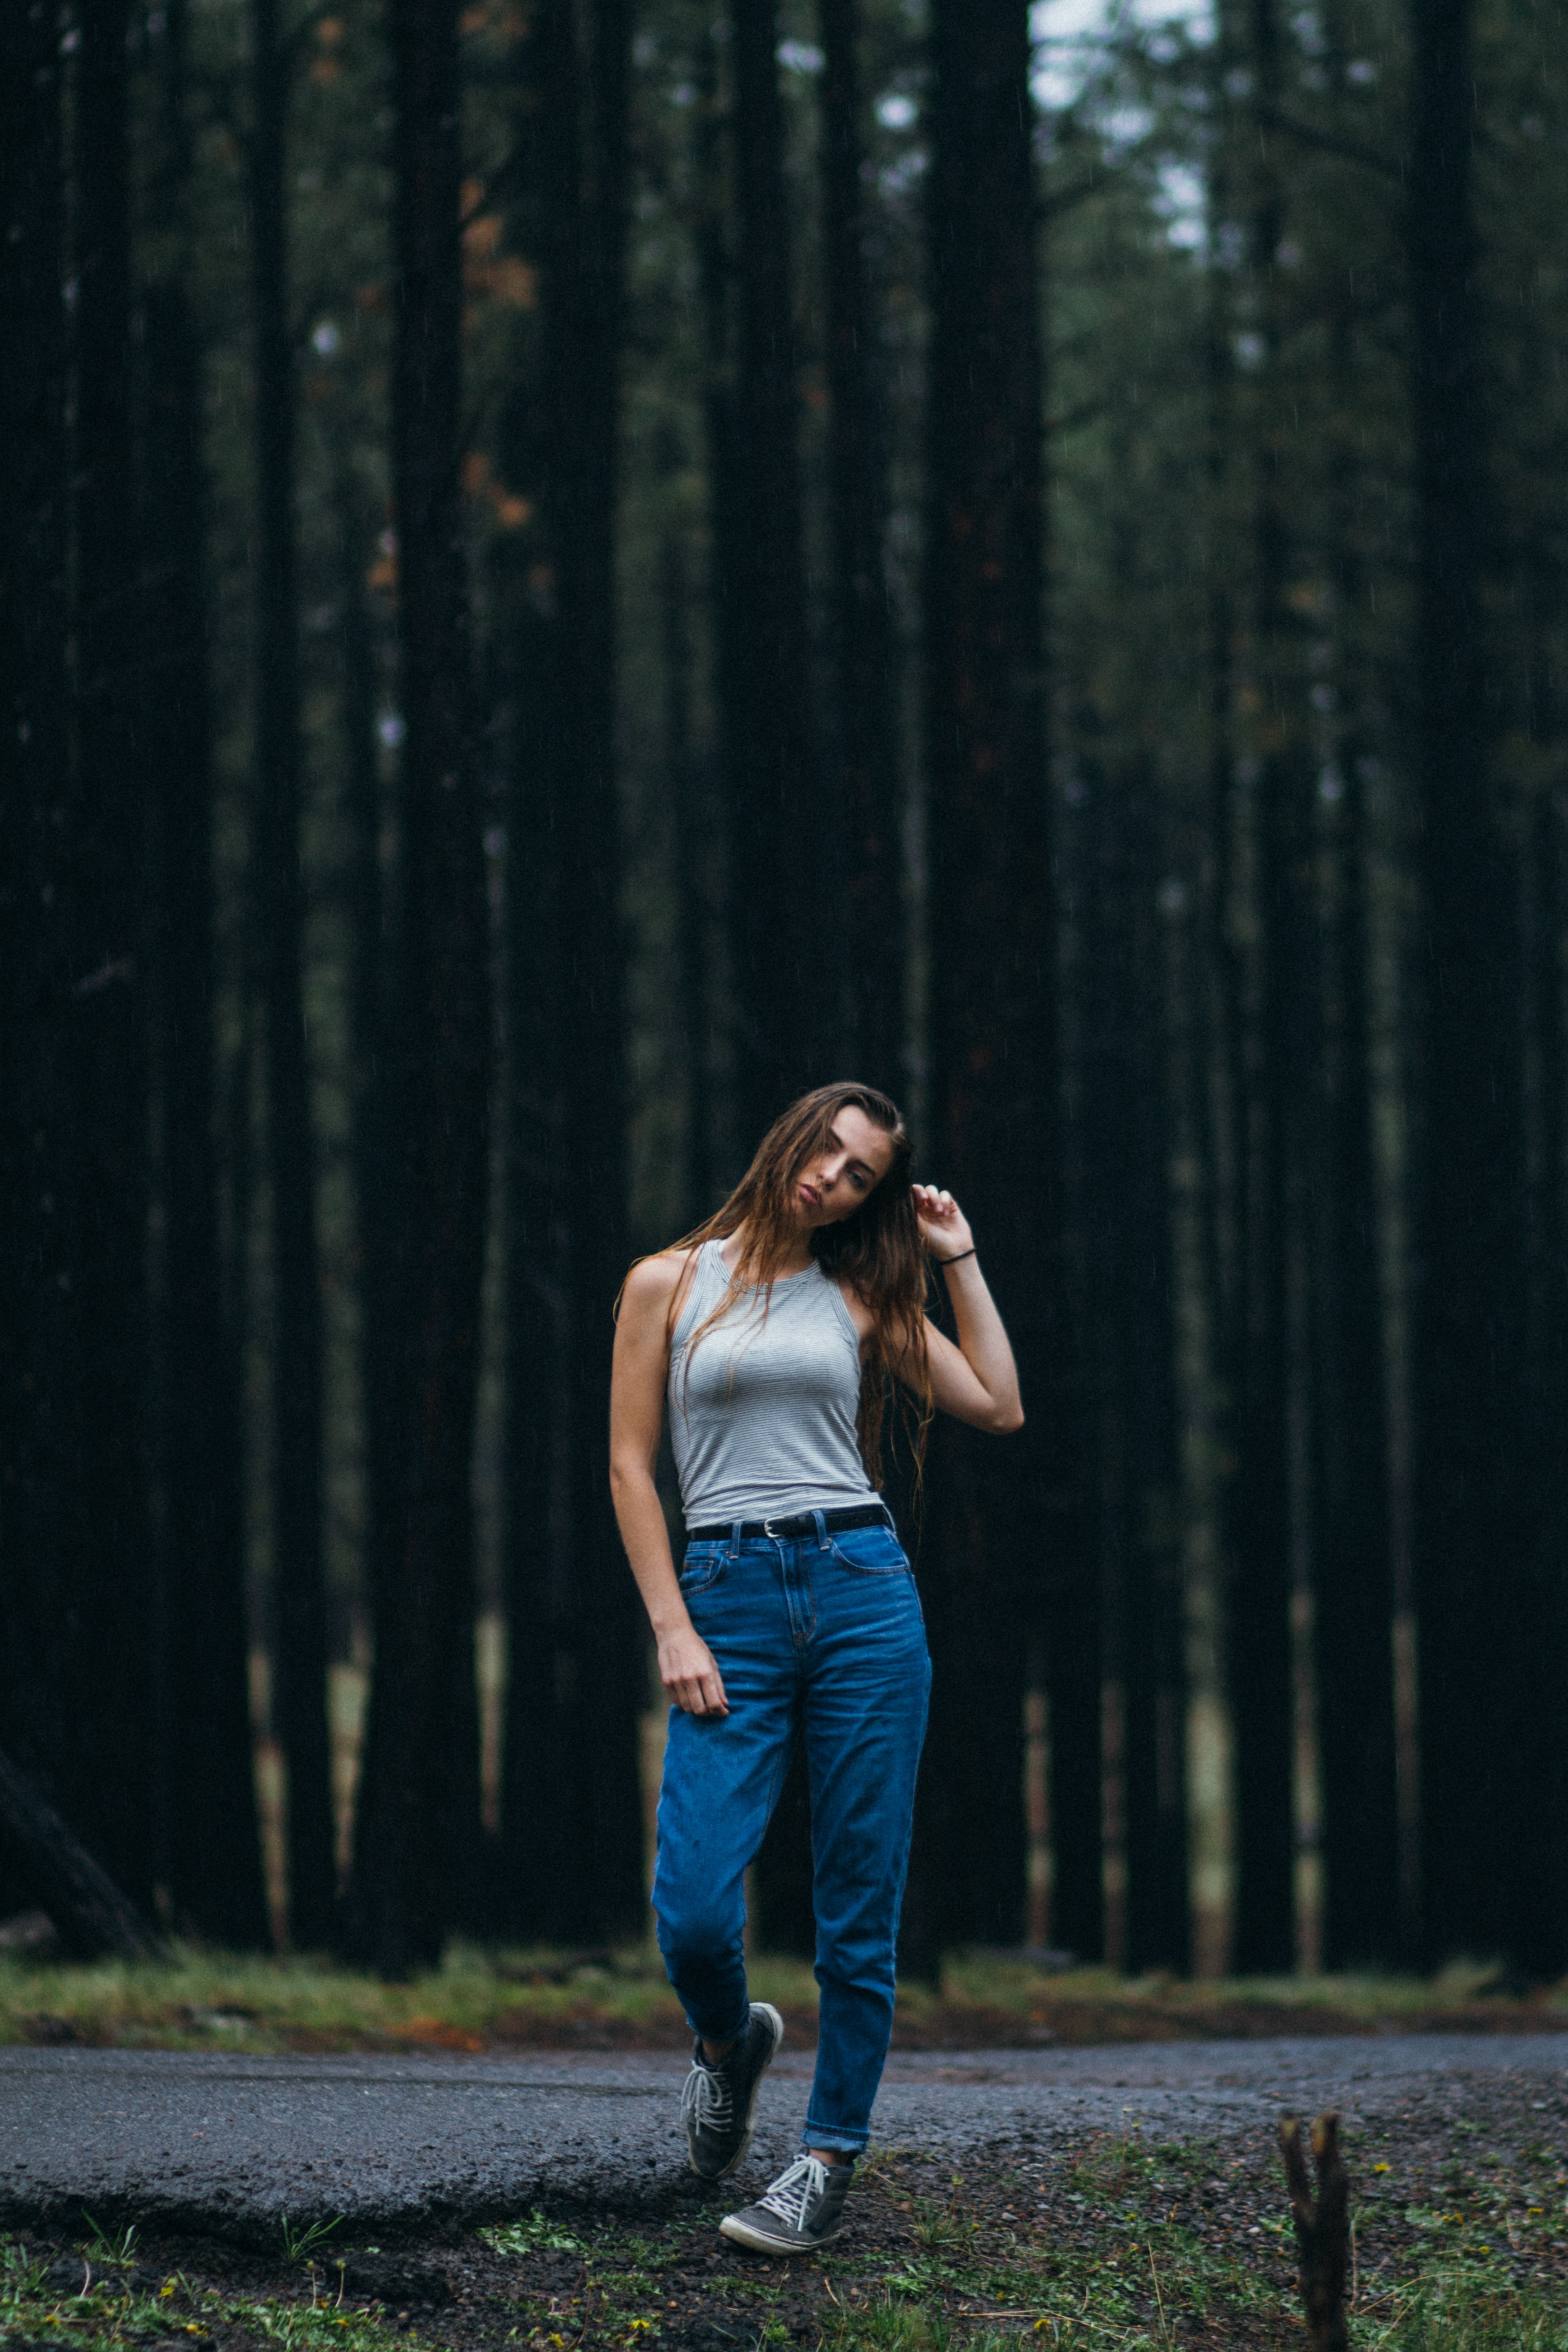 woman standing on walkway in front of forest trees